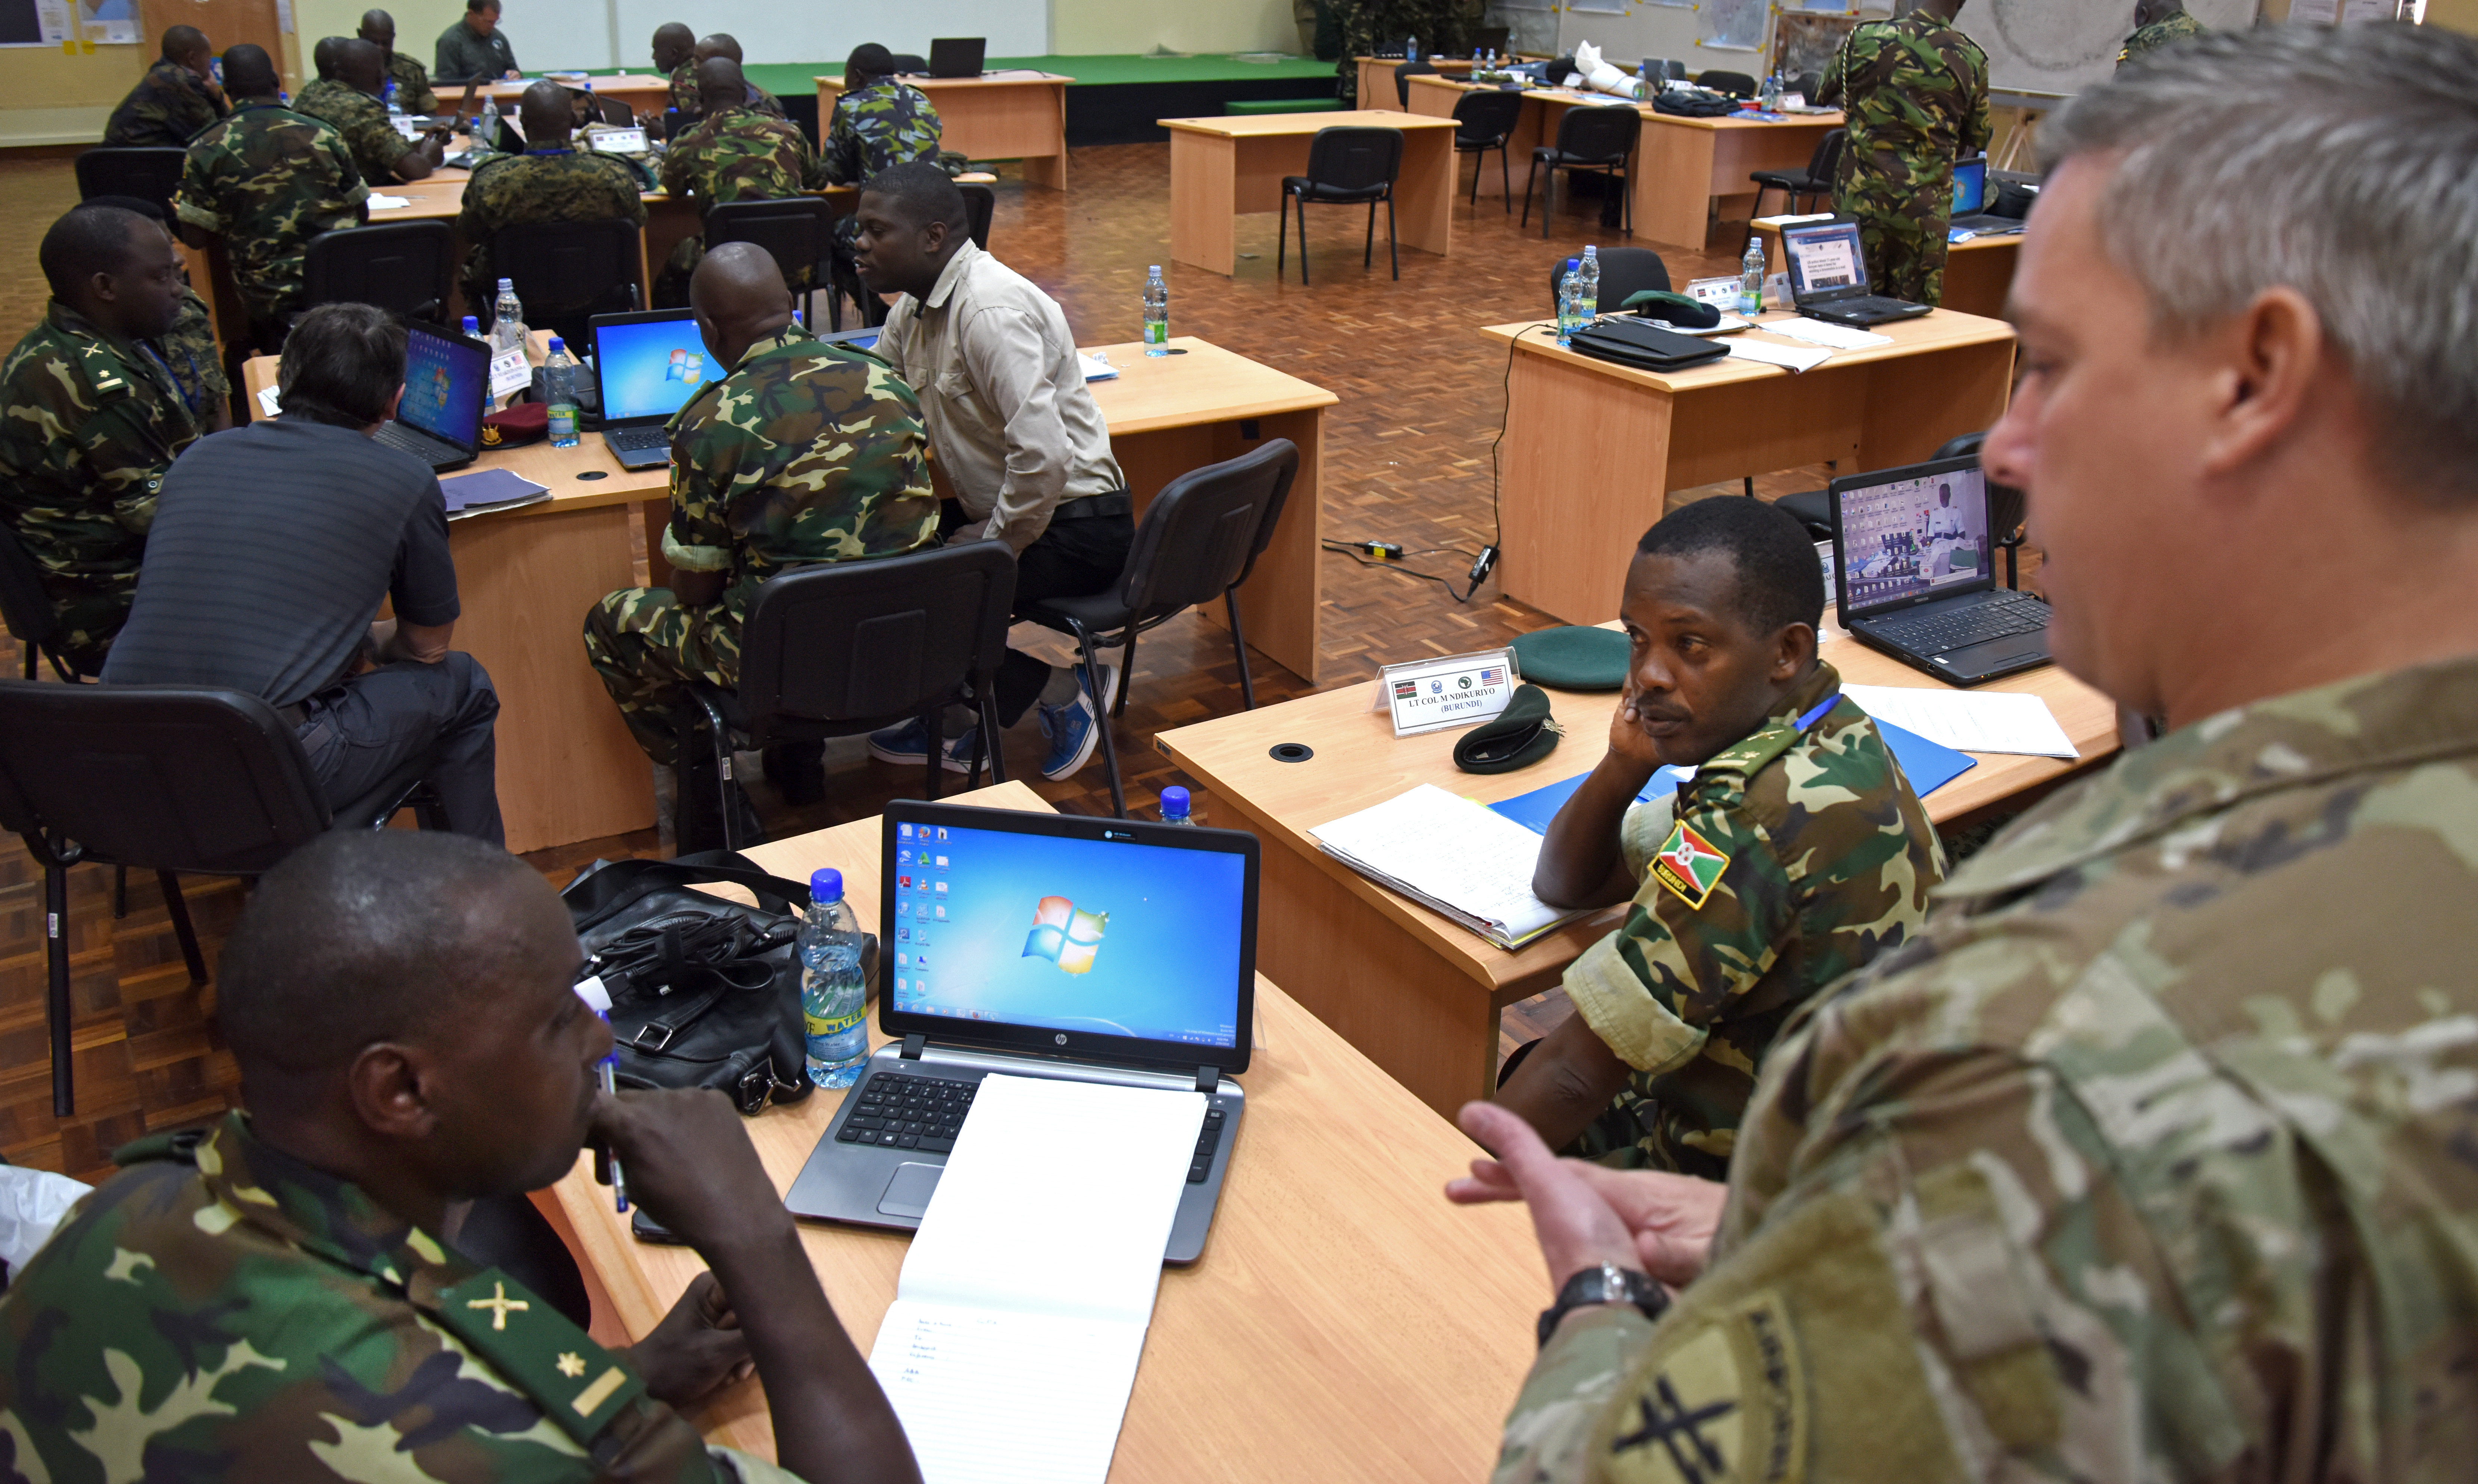 U.S. Army Capt. Erik Buendia, 403rd Civil Affair Battalion, mentors Burundi and Kenyan military officers on civil military engagement Feb. 29, 2016, during an African Union Mission in Somalia staff officers course in Nairobi, Kenya. The course covered six main functions necessary for successful military operations:  logistics and personnel, intelligence, public information, civil affairs, military operations, and command leadership. (U.S. Air Force photo by Staff Sgt. Kate Thornton)